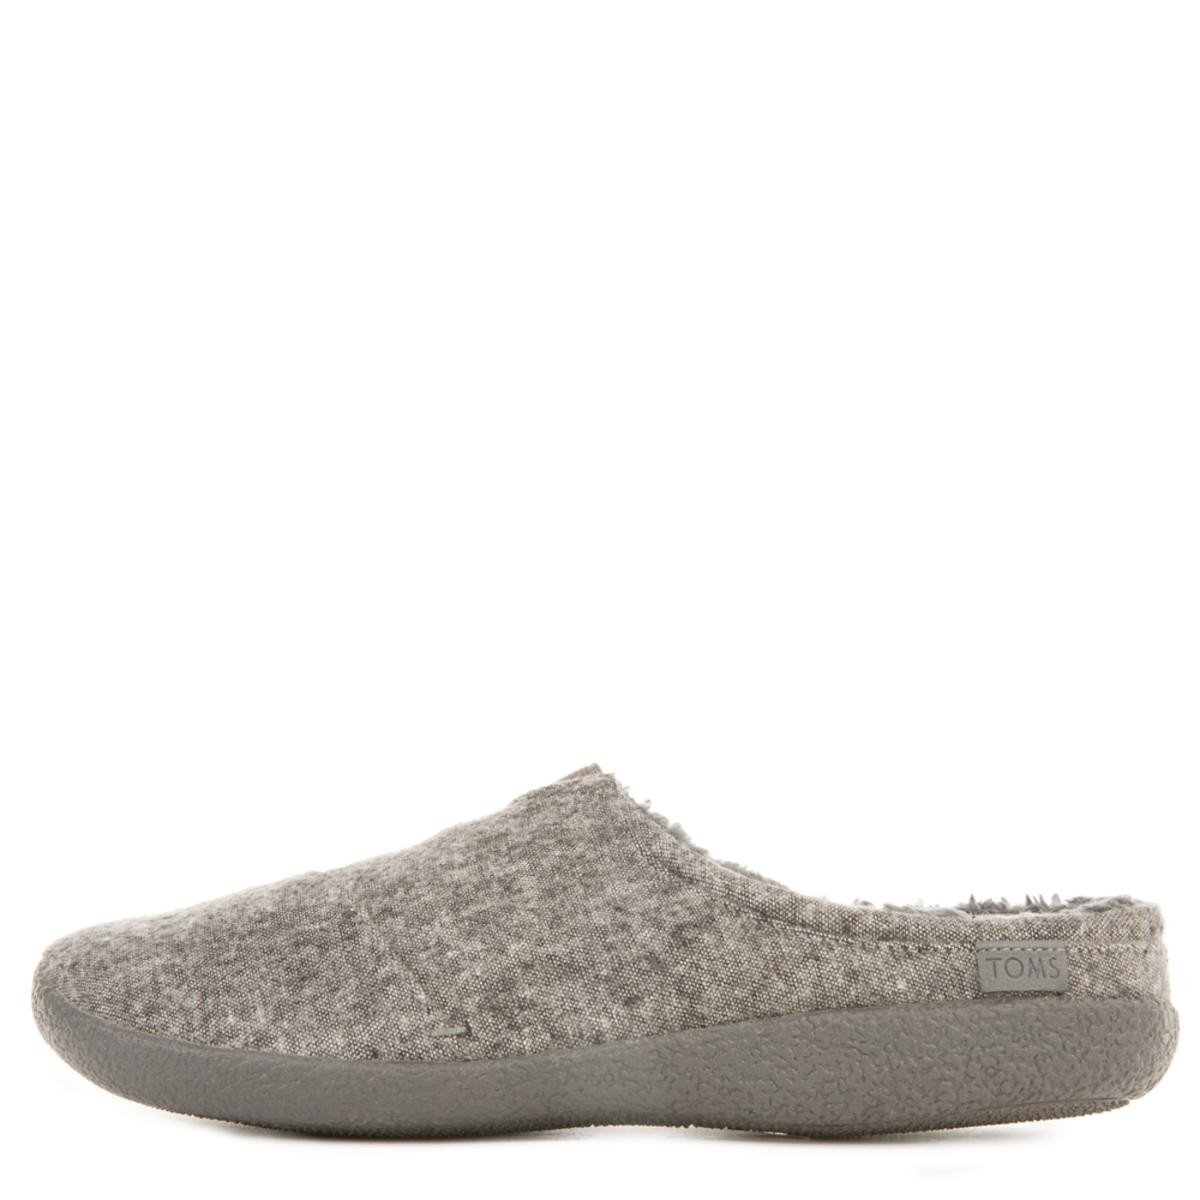 Toms for Men: Berkeley Grey Slub Textile Slippers